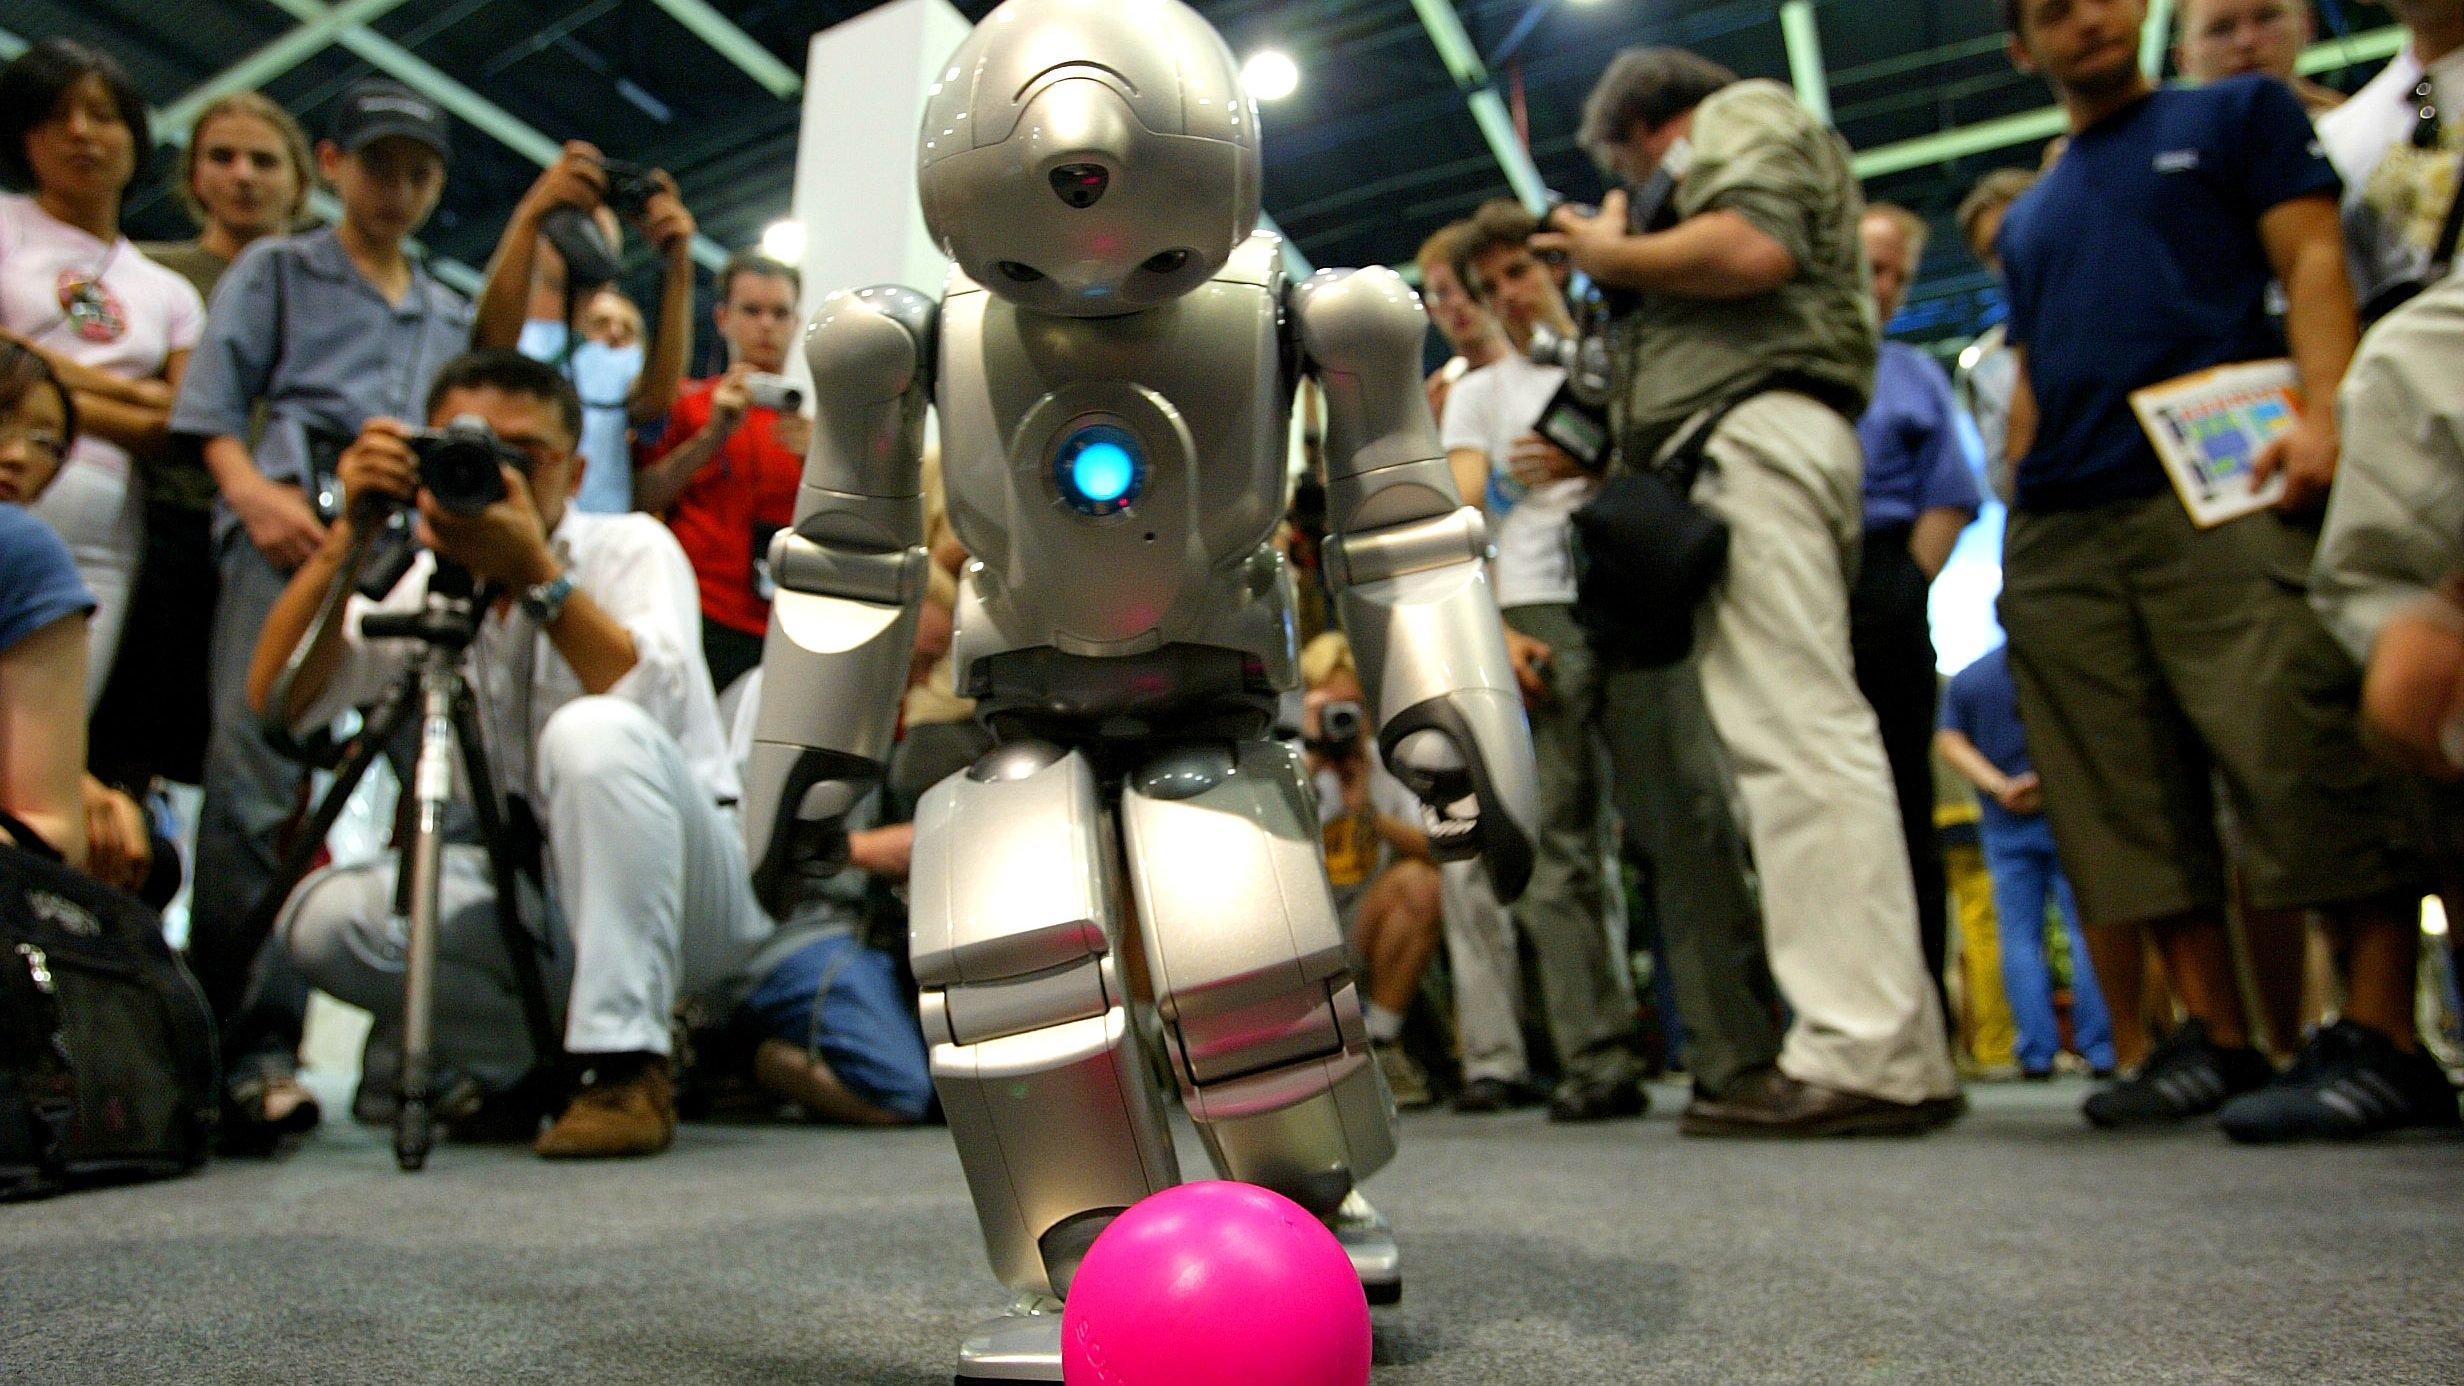 A humanoid robot tries to kick the ball during a demonstation at the 7th edition of the Soccer World Championship for Robots in Padua, northern Italy, July 9, 2003. Robocup is an international research and education initiative and its goal is to foster artificial intelligence and robotics research by providing a standard problem where a wide range of technologies can be examined and integrated. REUTERS/Max Rossi